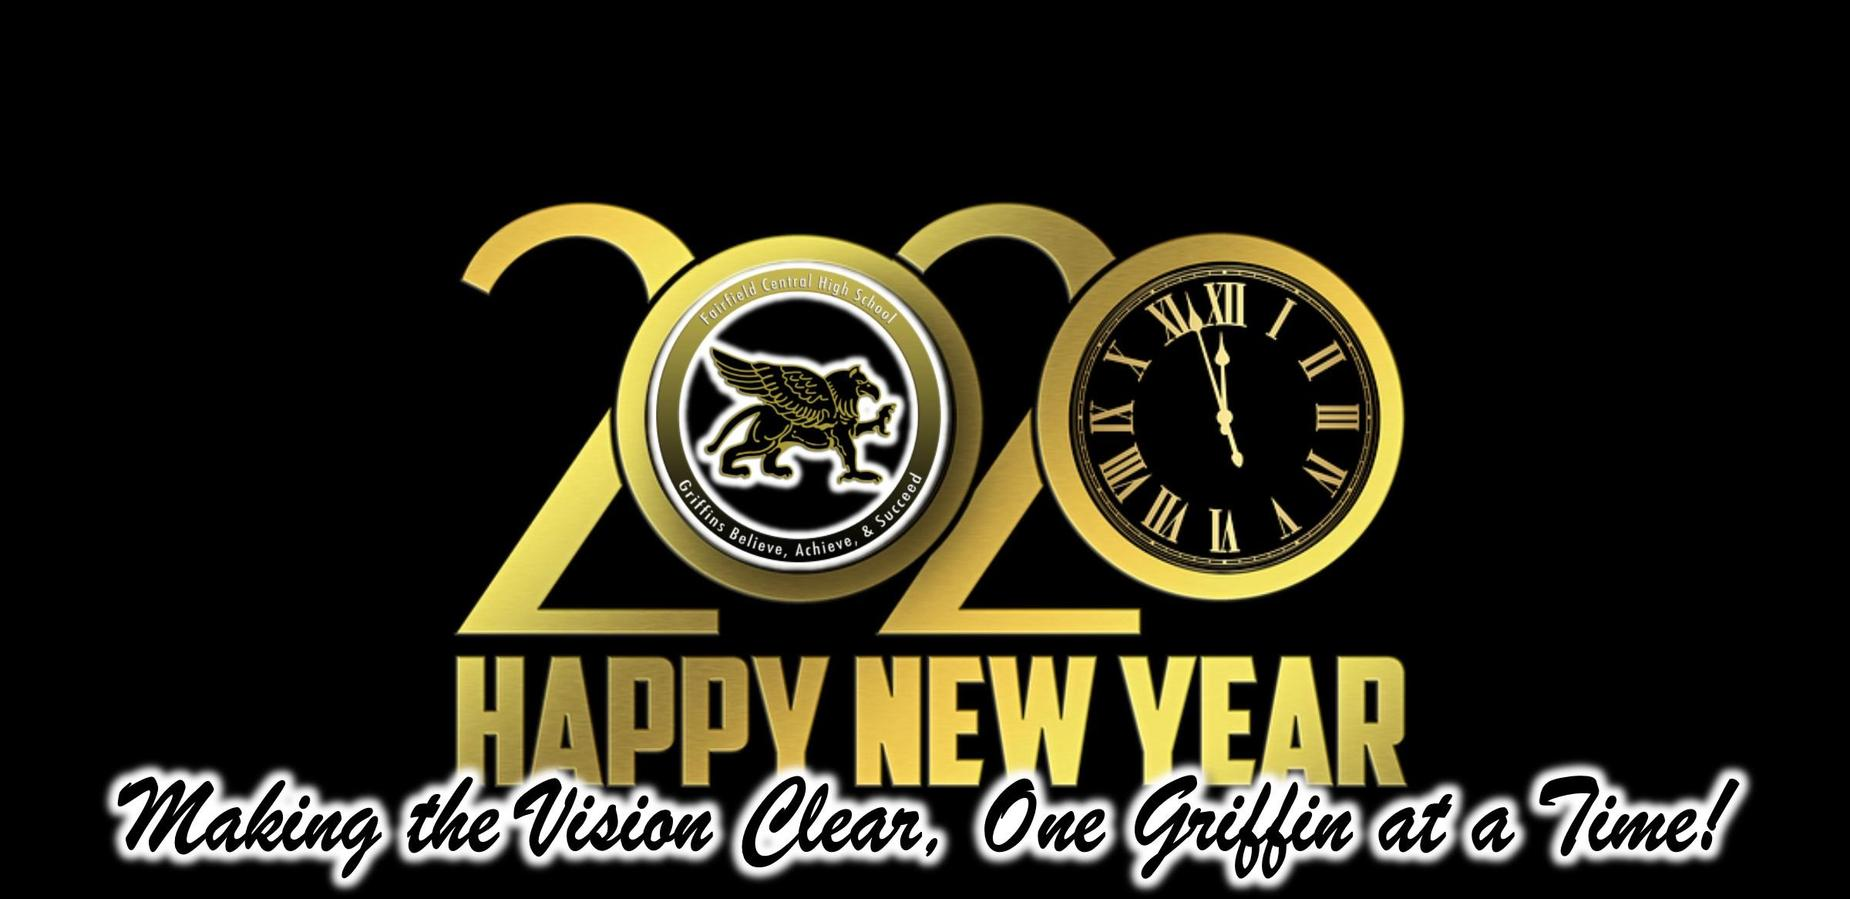 2020 Happy New Year- Making the Vision Clear, One Griffin at a Time!